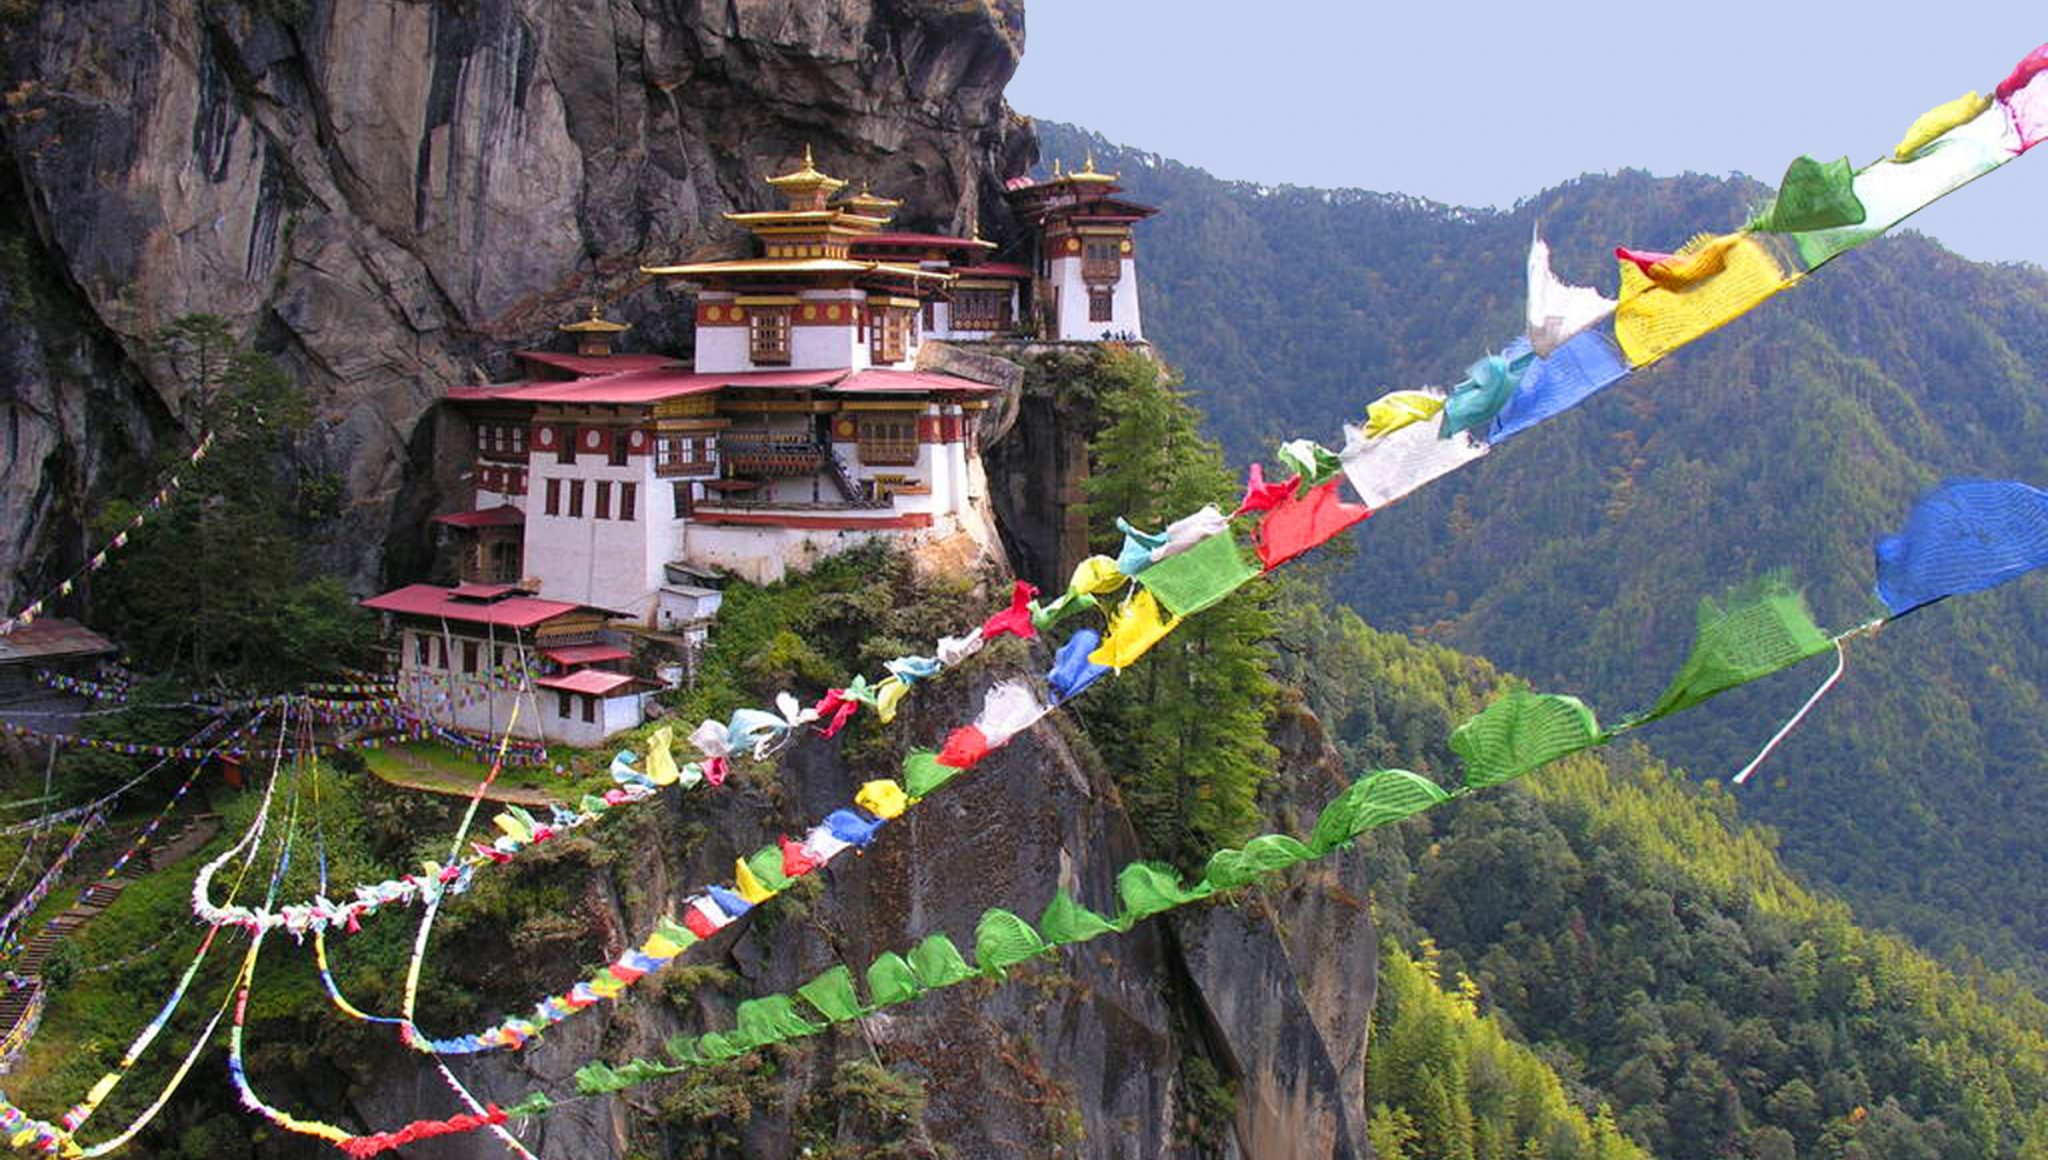 Himalaya Hd Wallpaper Bhutan Adventure Travel Bhutan Womens Tour Himalayas